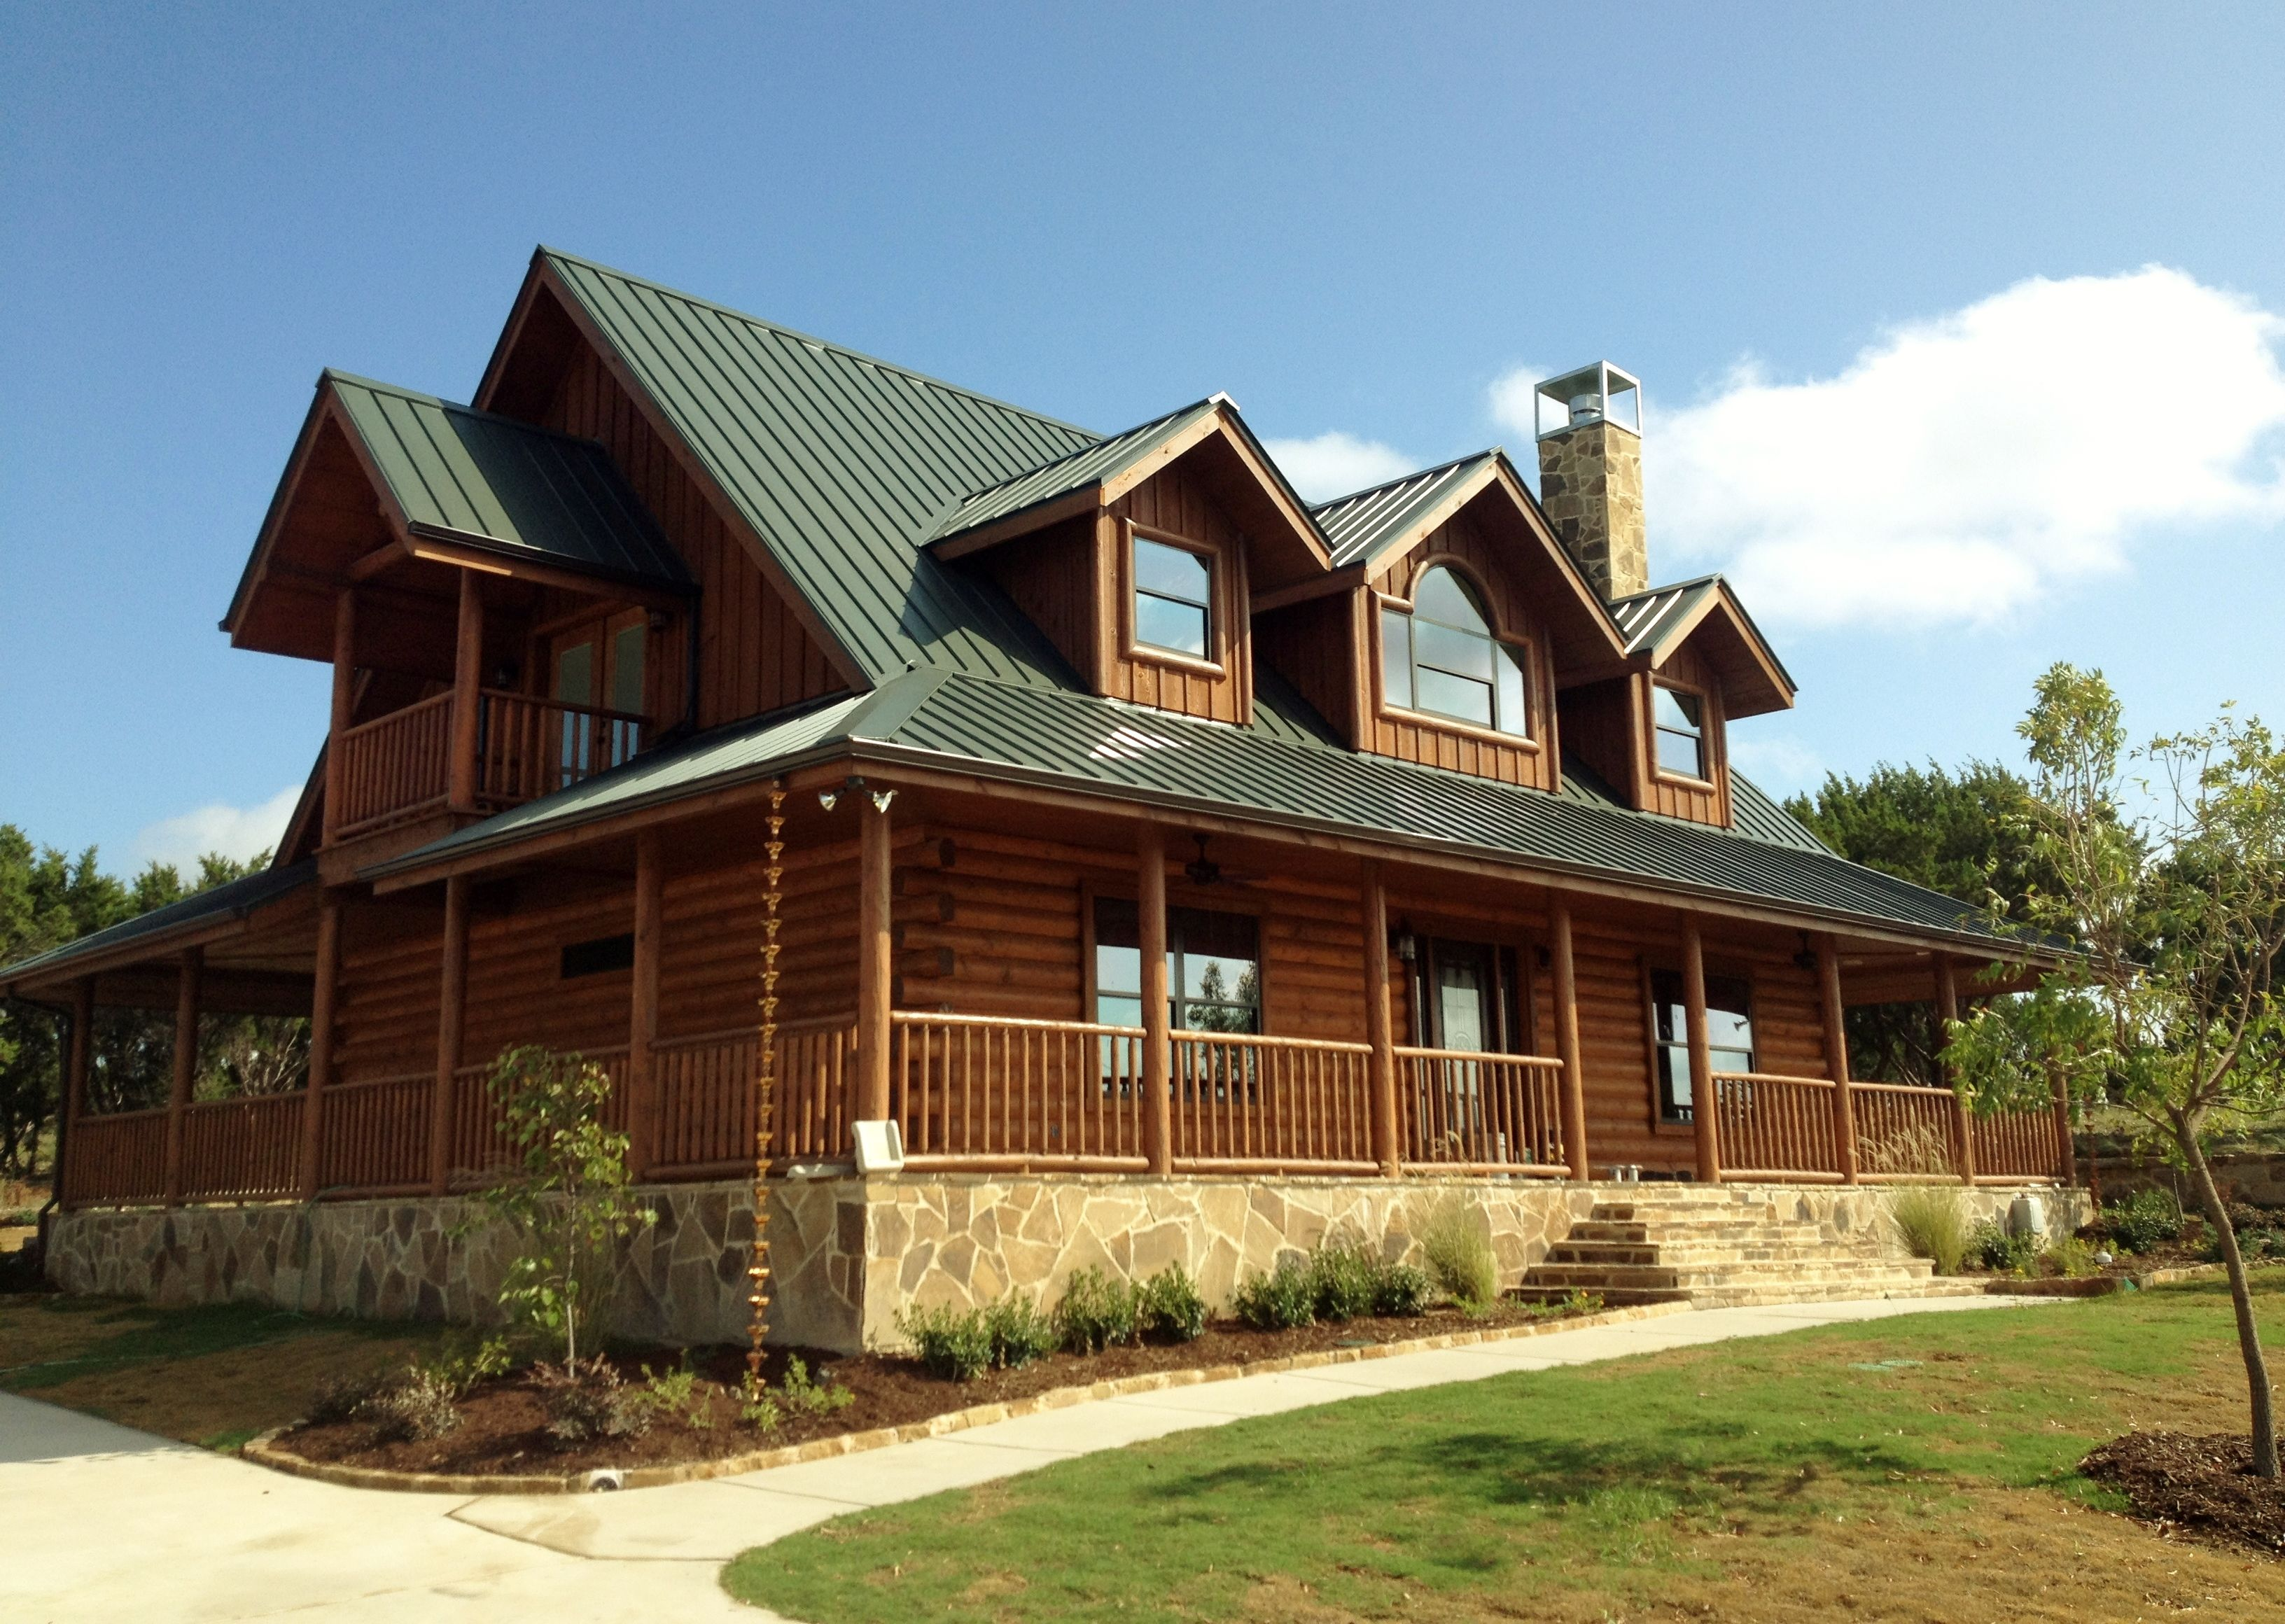 eco house rentals the park log texas tiny friendly tx sale houses rv maple for cabin cabins canton lodging in